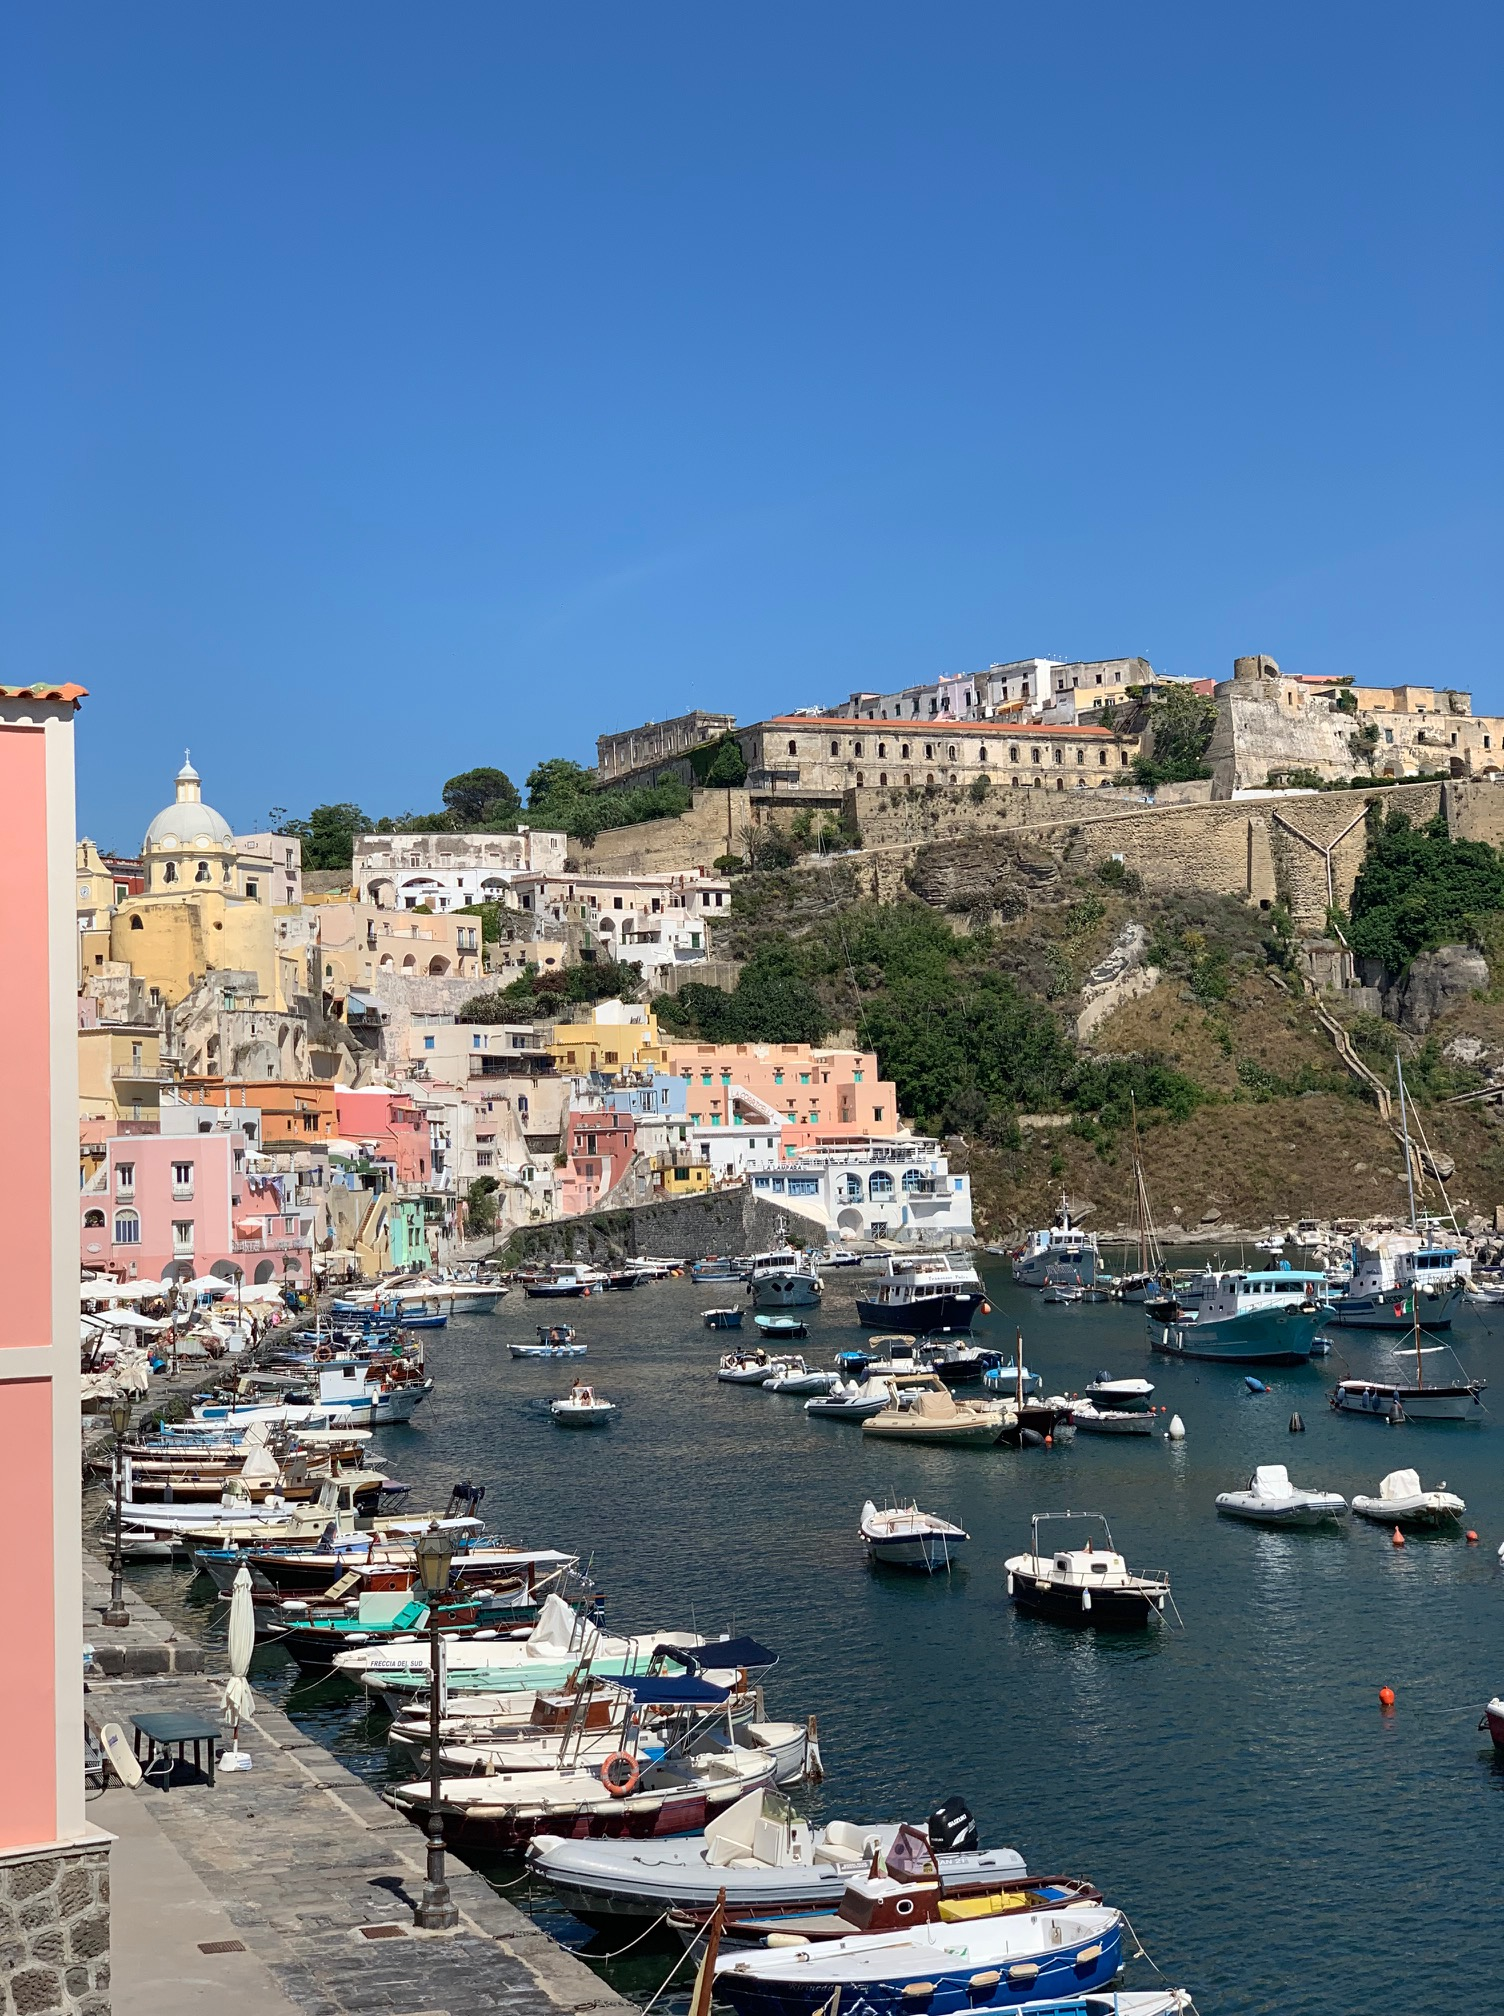 Procida, the tiny island off the coast of Naples, Italy